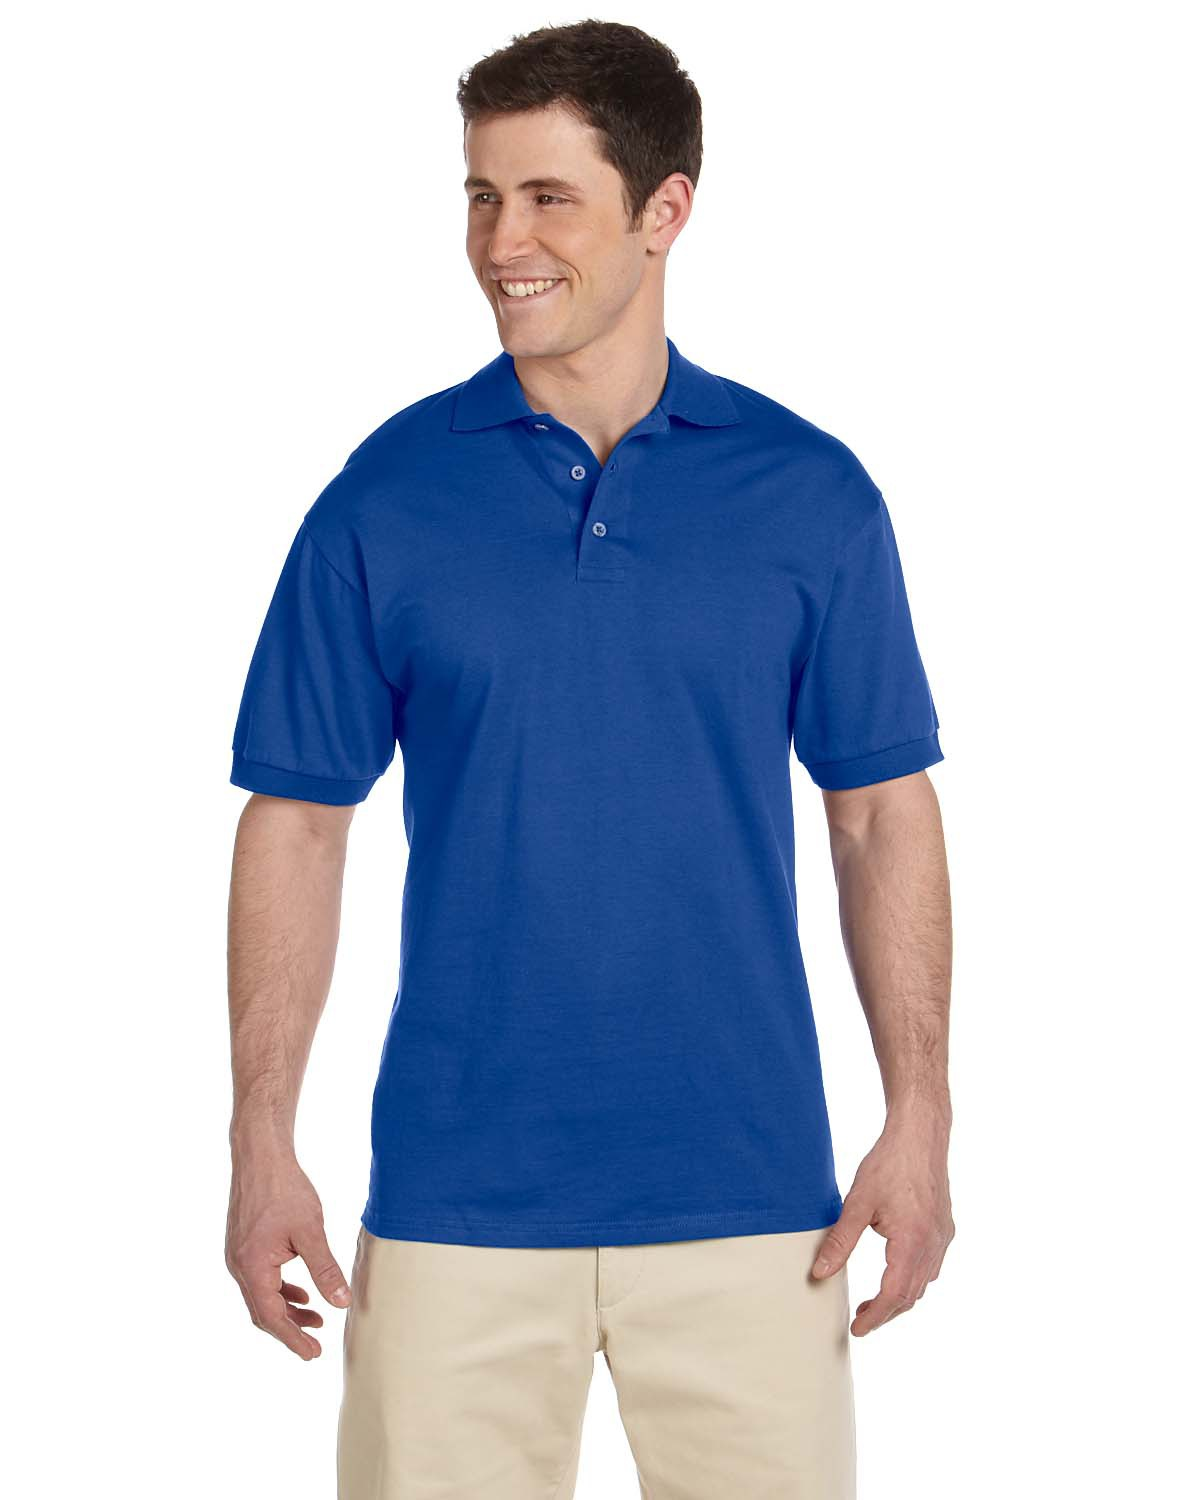 Jerzees J100  6 oz., 100% Cotton JerseySport Shirt